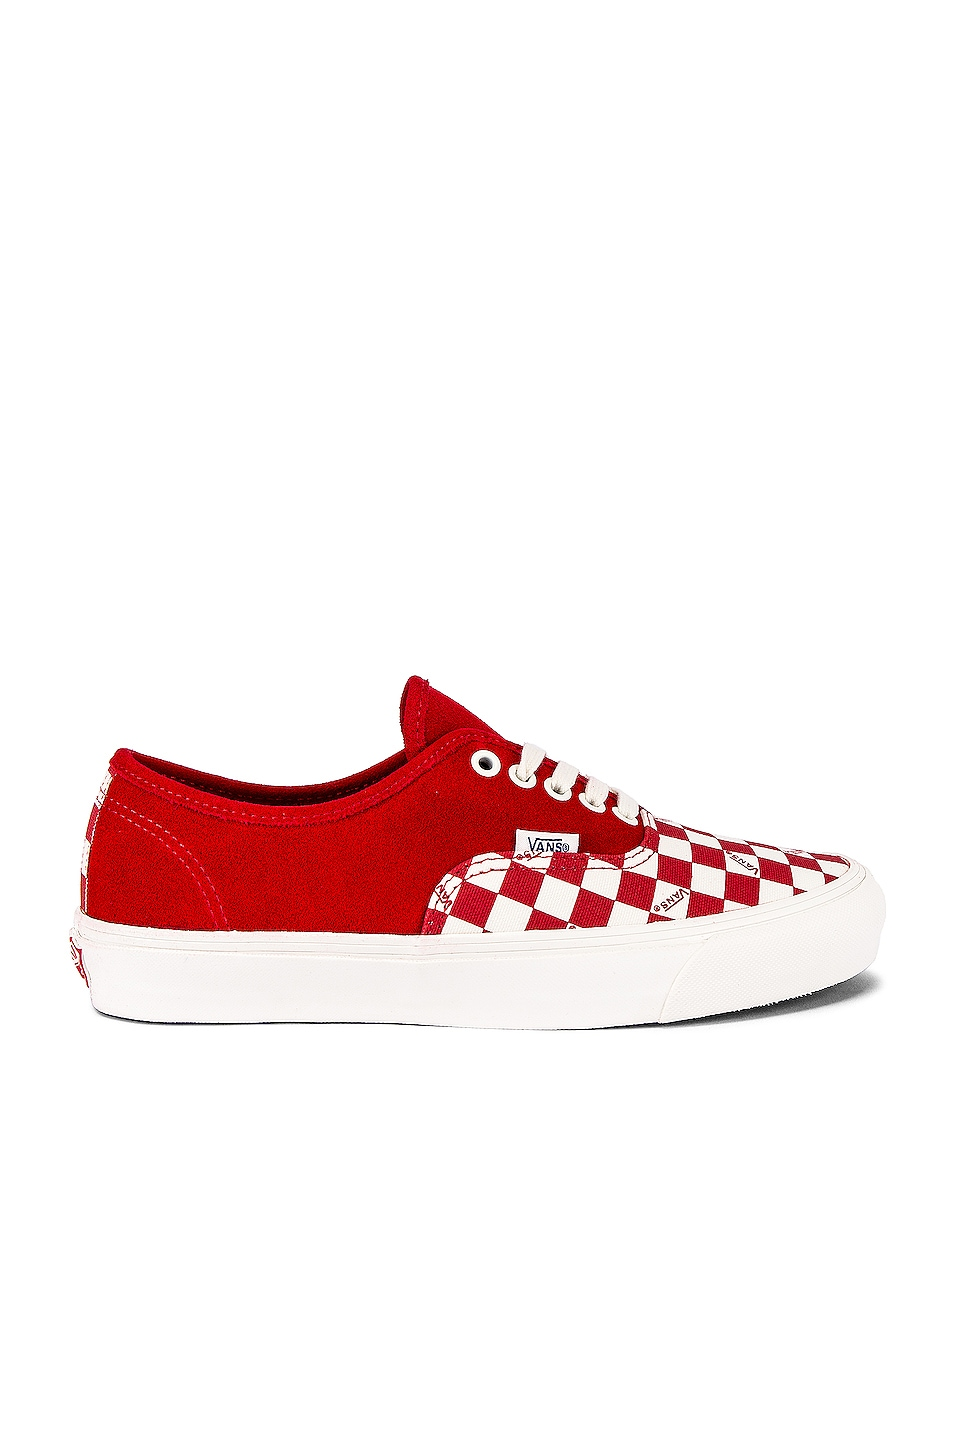 Image 1 of Vans Vault OG Authentic LX in Racing Red & Checkerboard